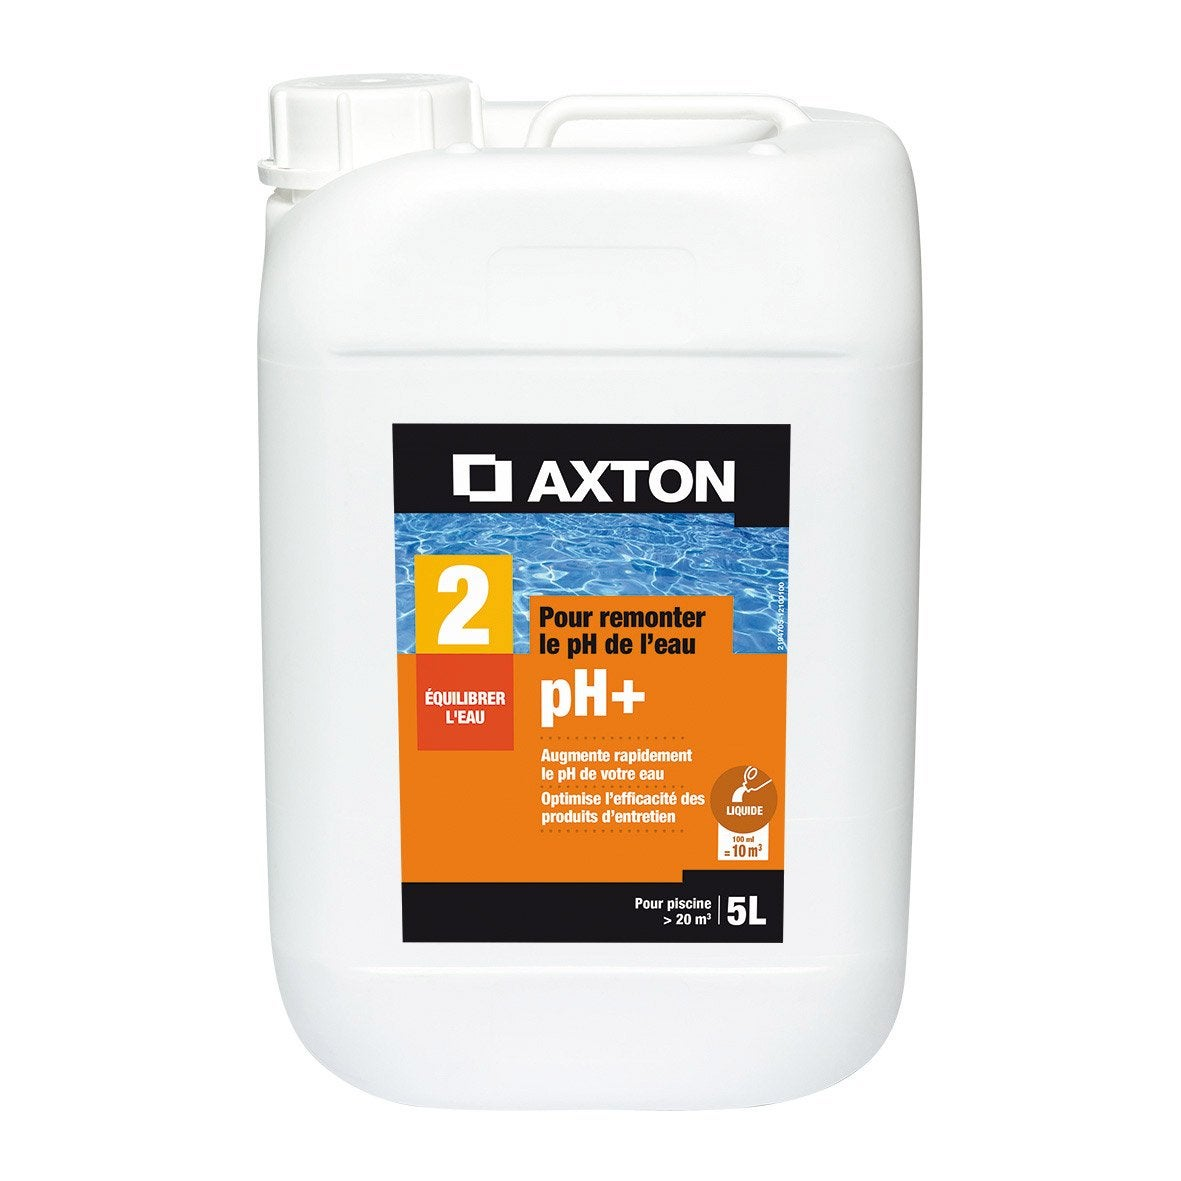 Rehausseur de ph piscine axton liquide 5 l leroy merlin for Algues piscine ph